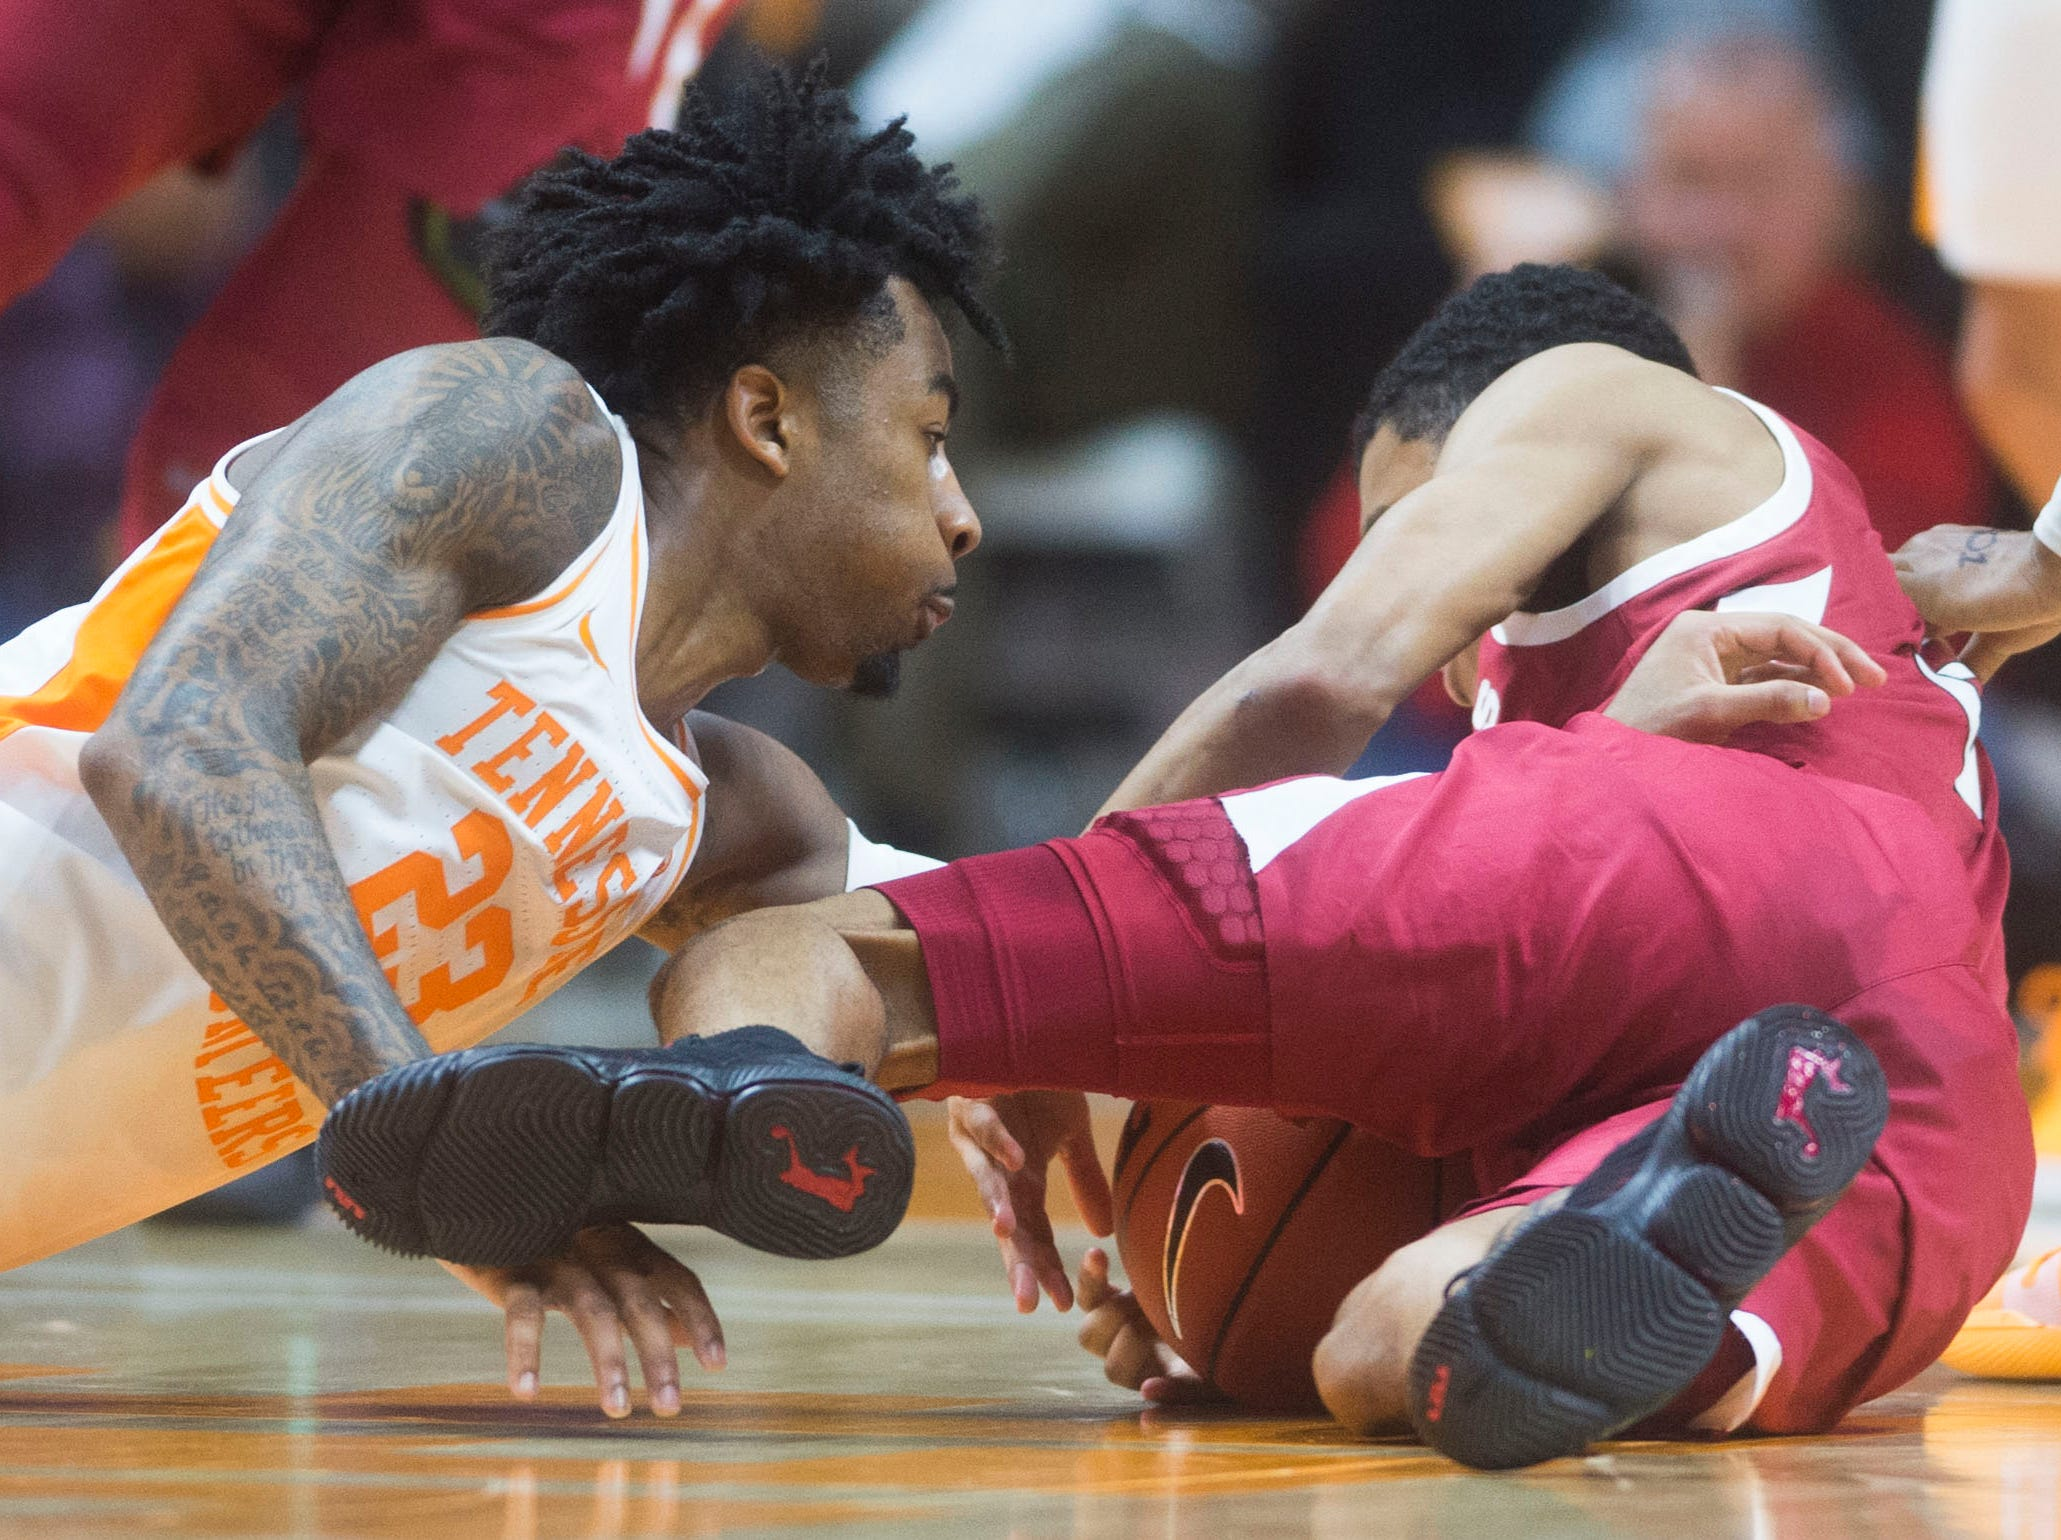 Tennessee's Jordan Bowden (23) fights for possession of the ball during a NCAA men's basketball game between Tennessee and Arkansas at Thompson-Boling Arena Tuesday, Jan. 15, 2019. Tennessee defeated Arkansas 106-87.